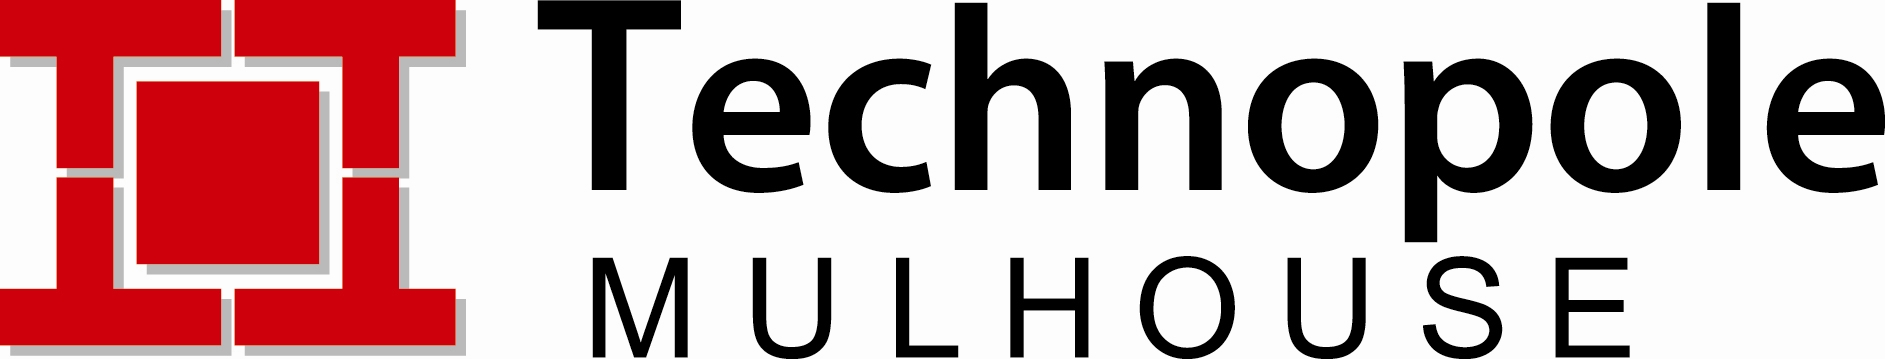 Technopole Mulhouse